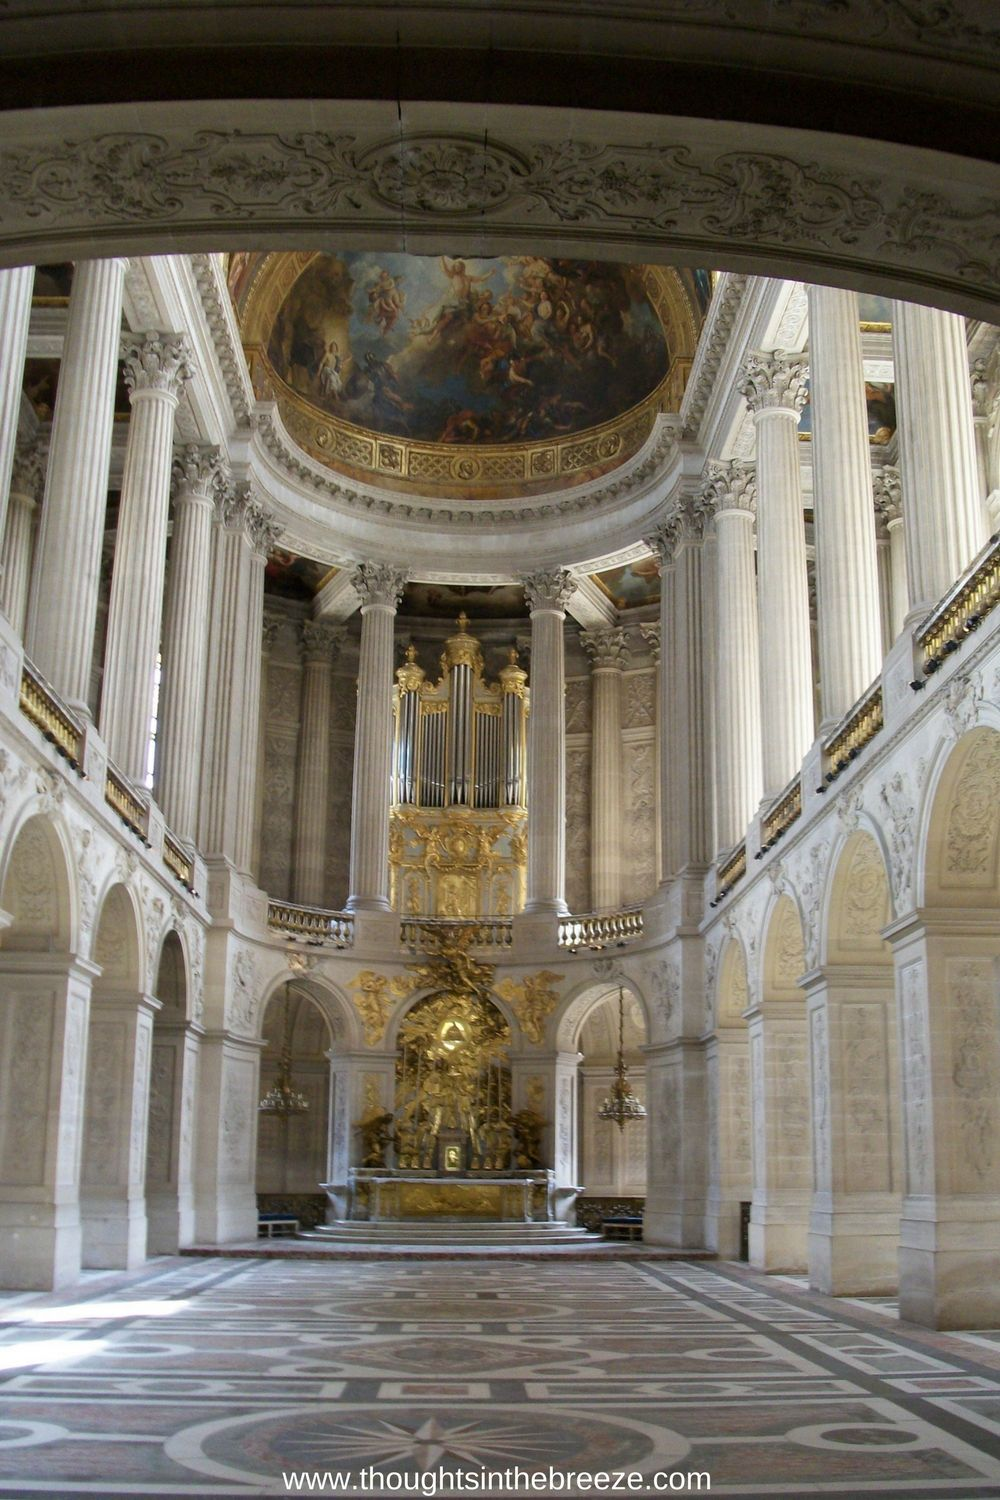 Spend a day in the Chateau de Versailles, visit the Hall of Mirrors ...